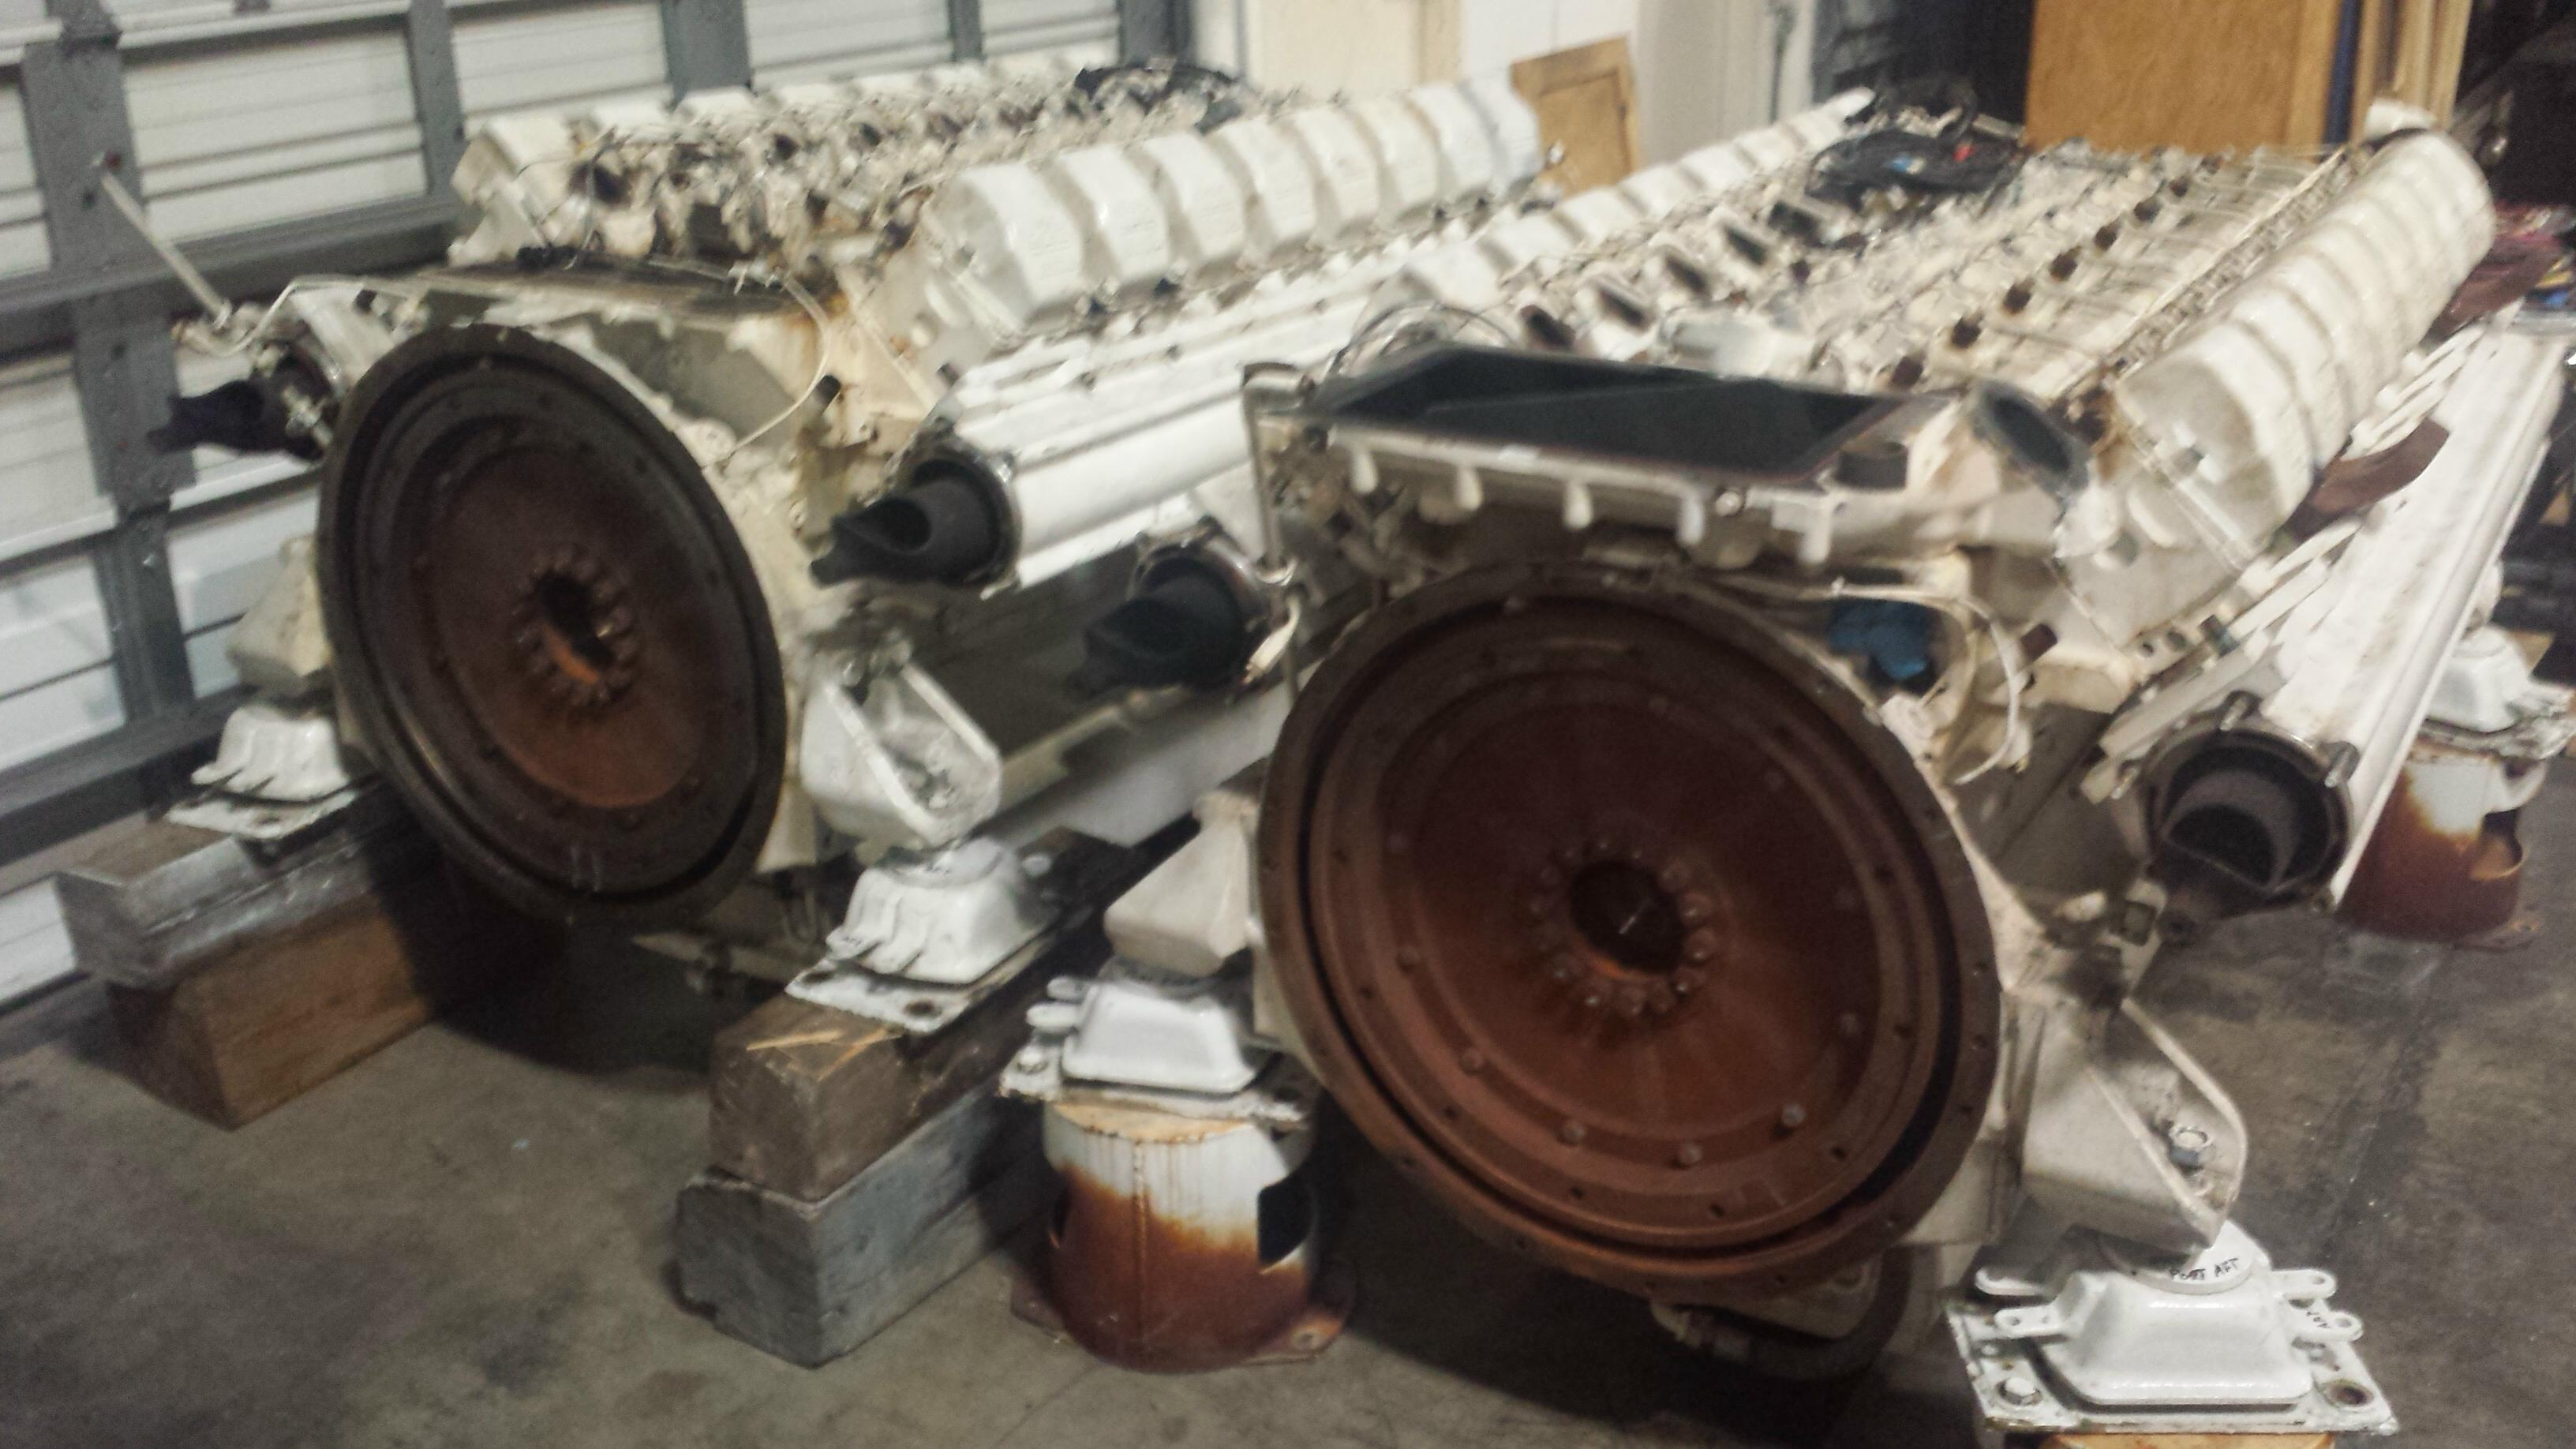 DETROIT DIESEL-16v-2000M USED MARINE ENGINES